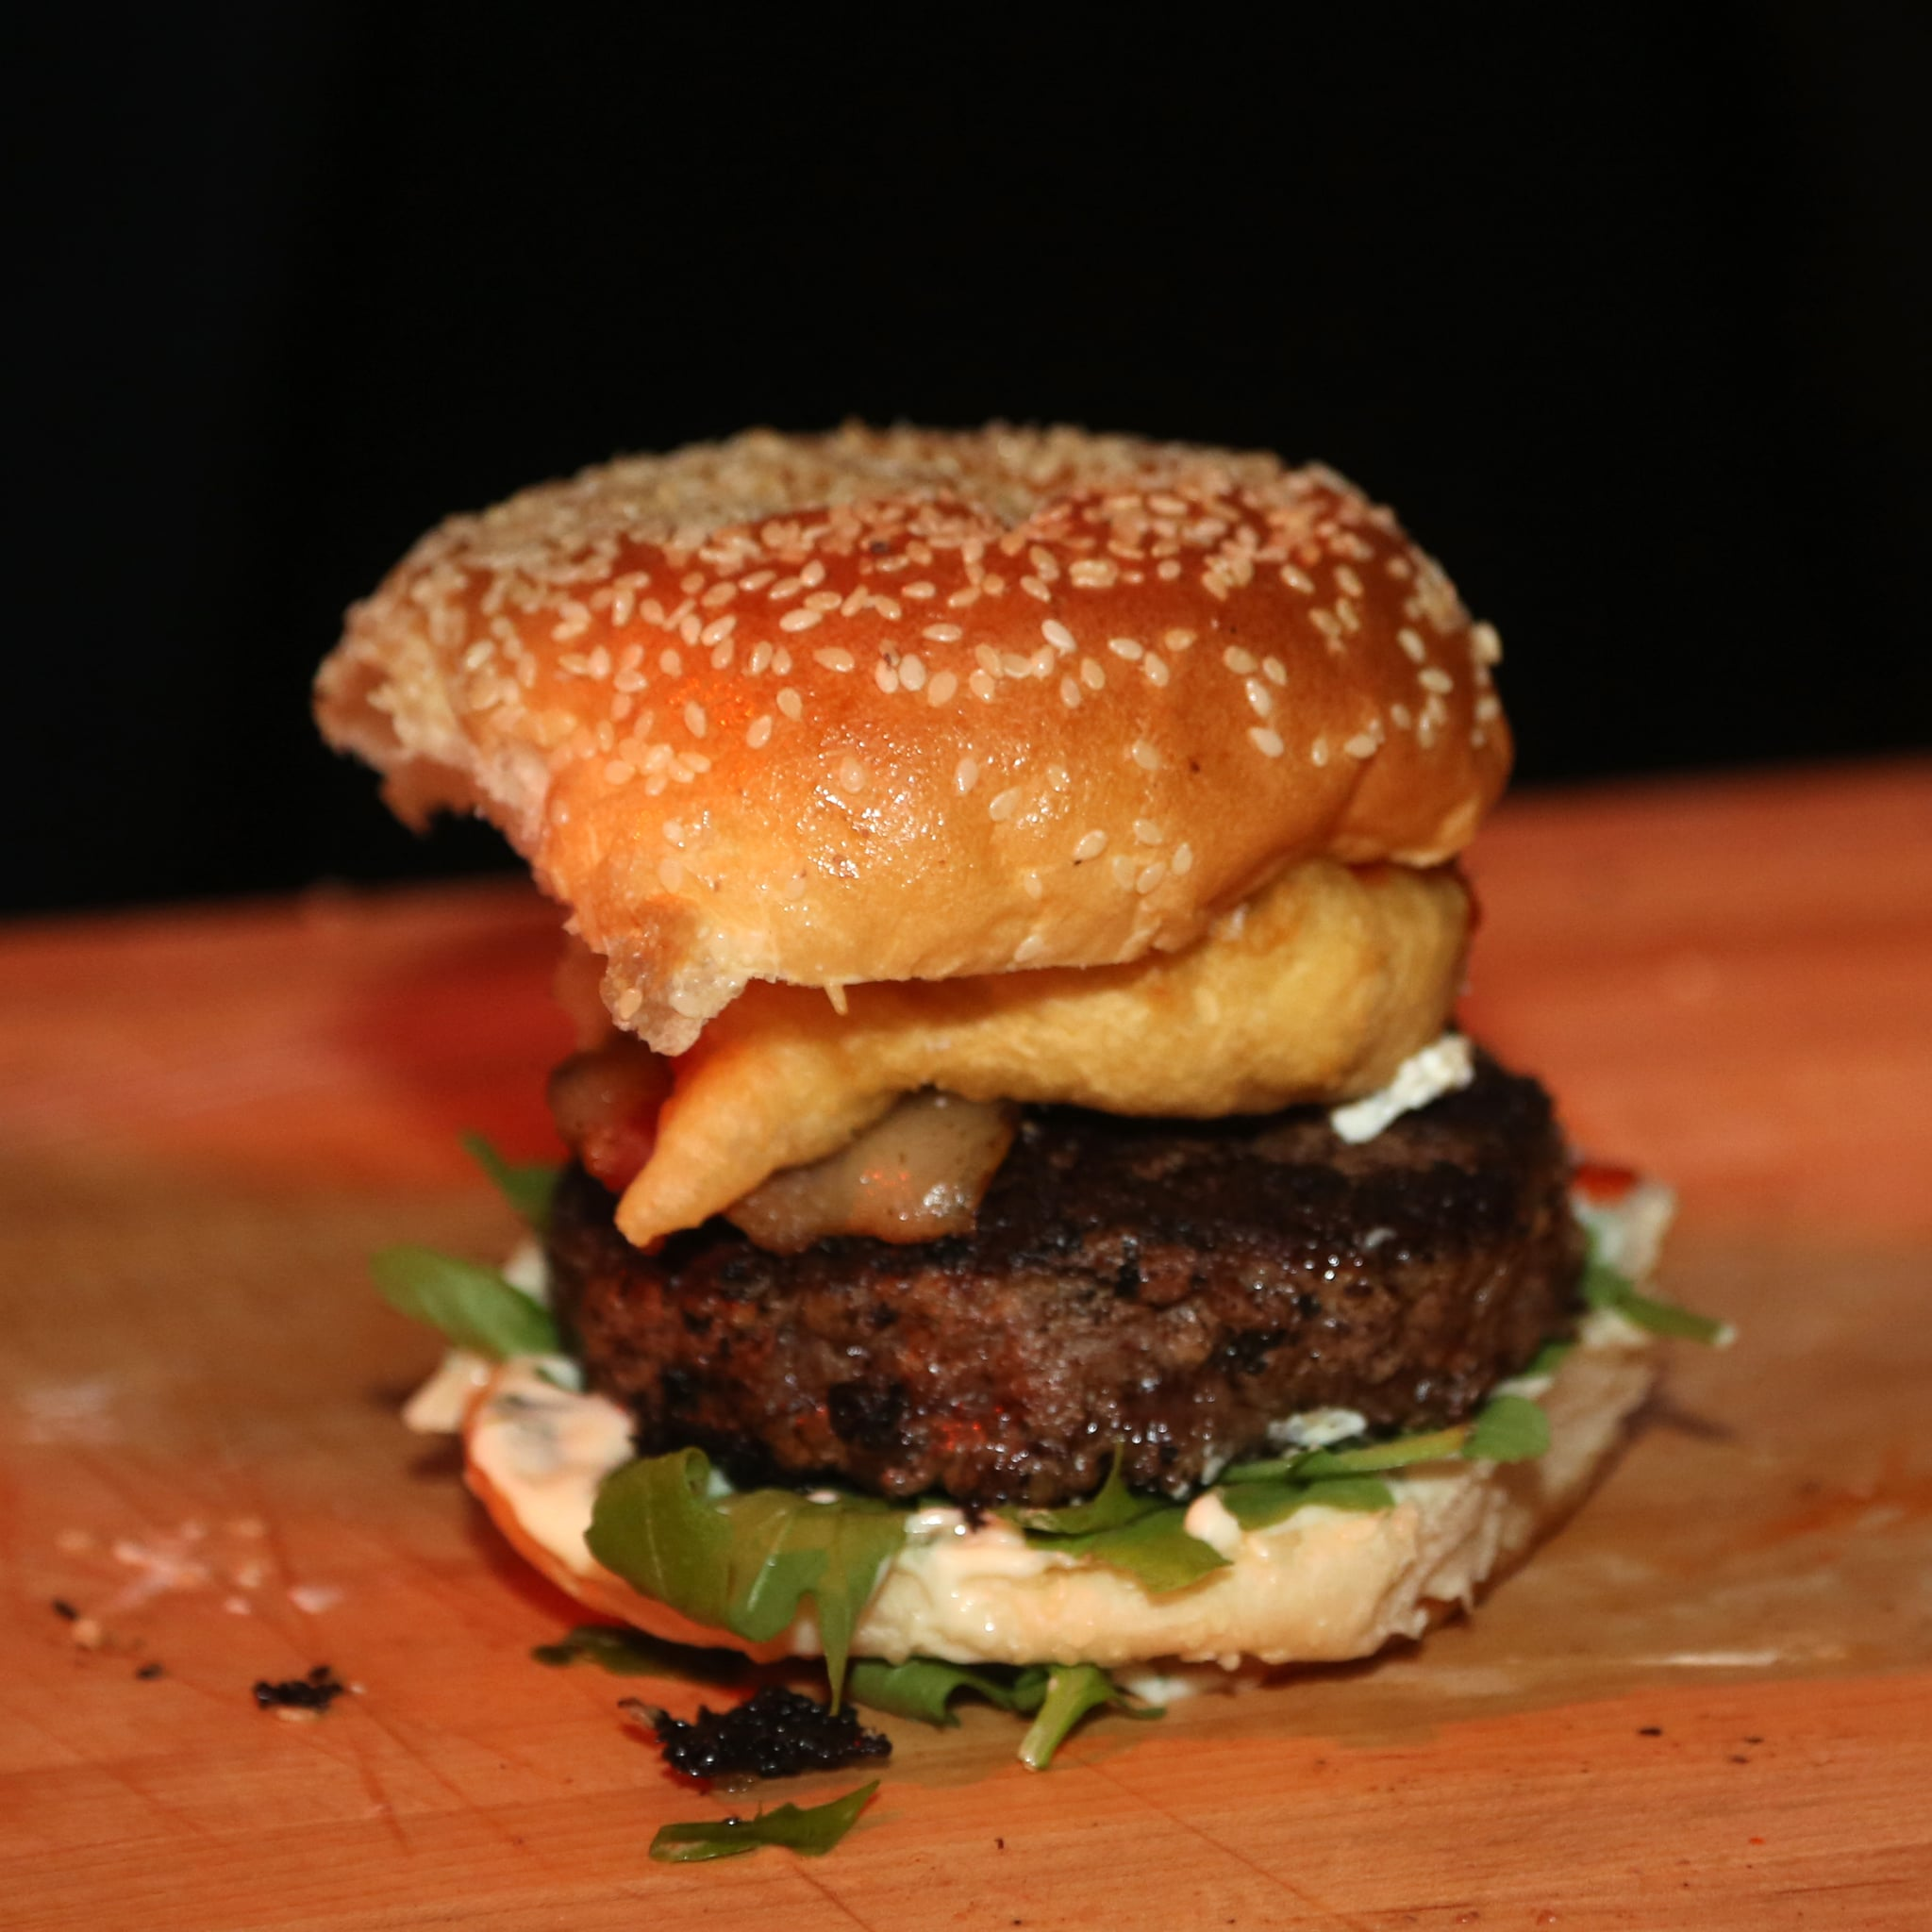 Best of the Bash: The Burger Dive